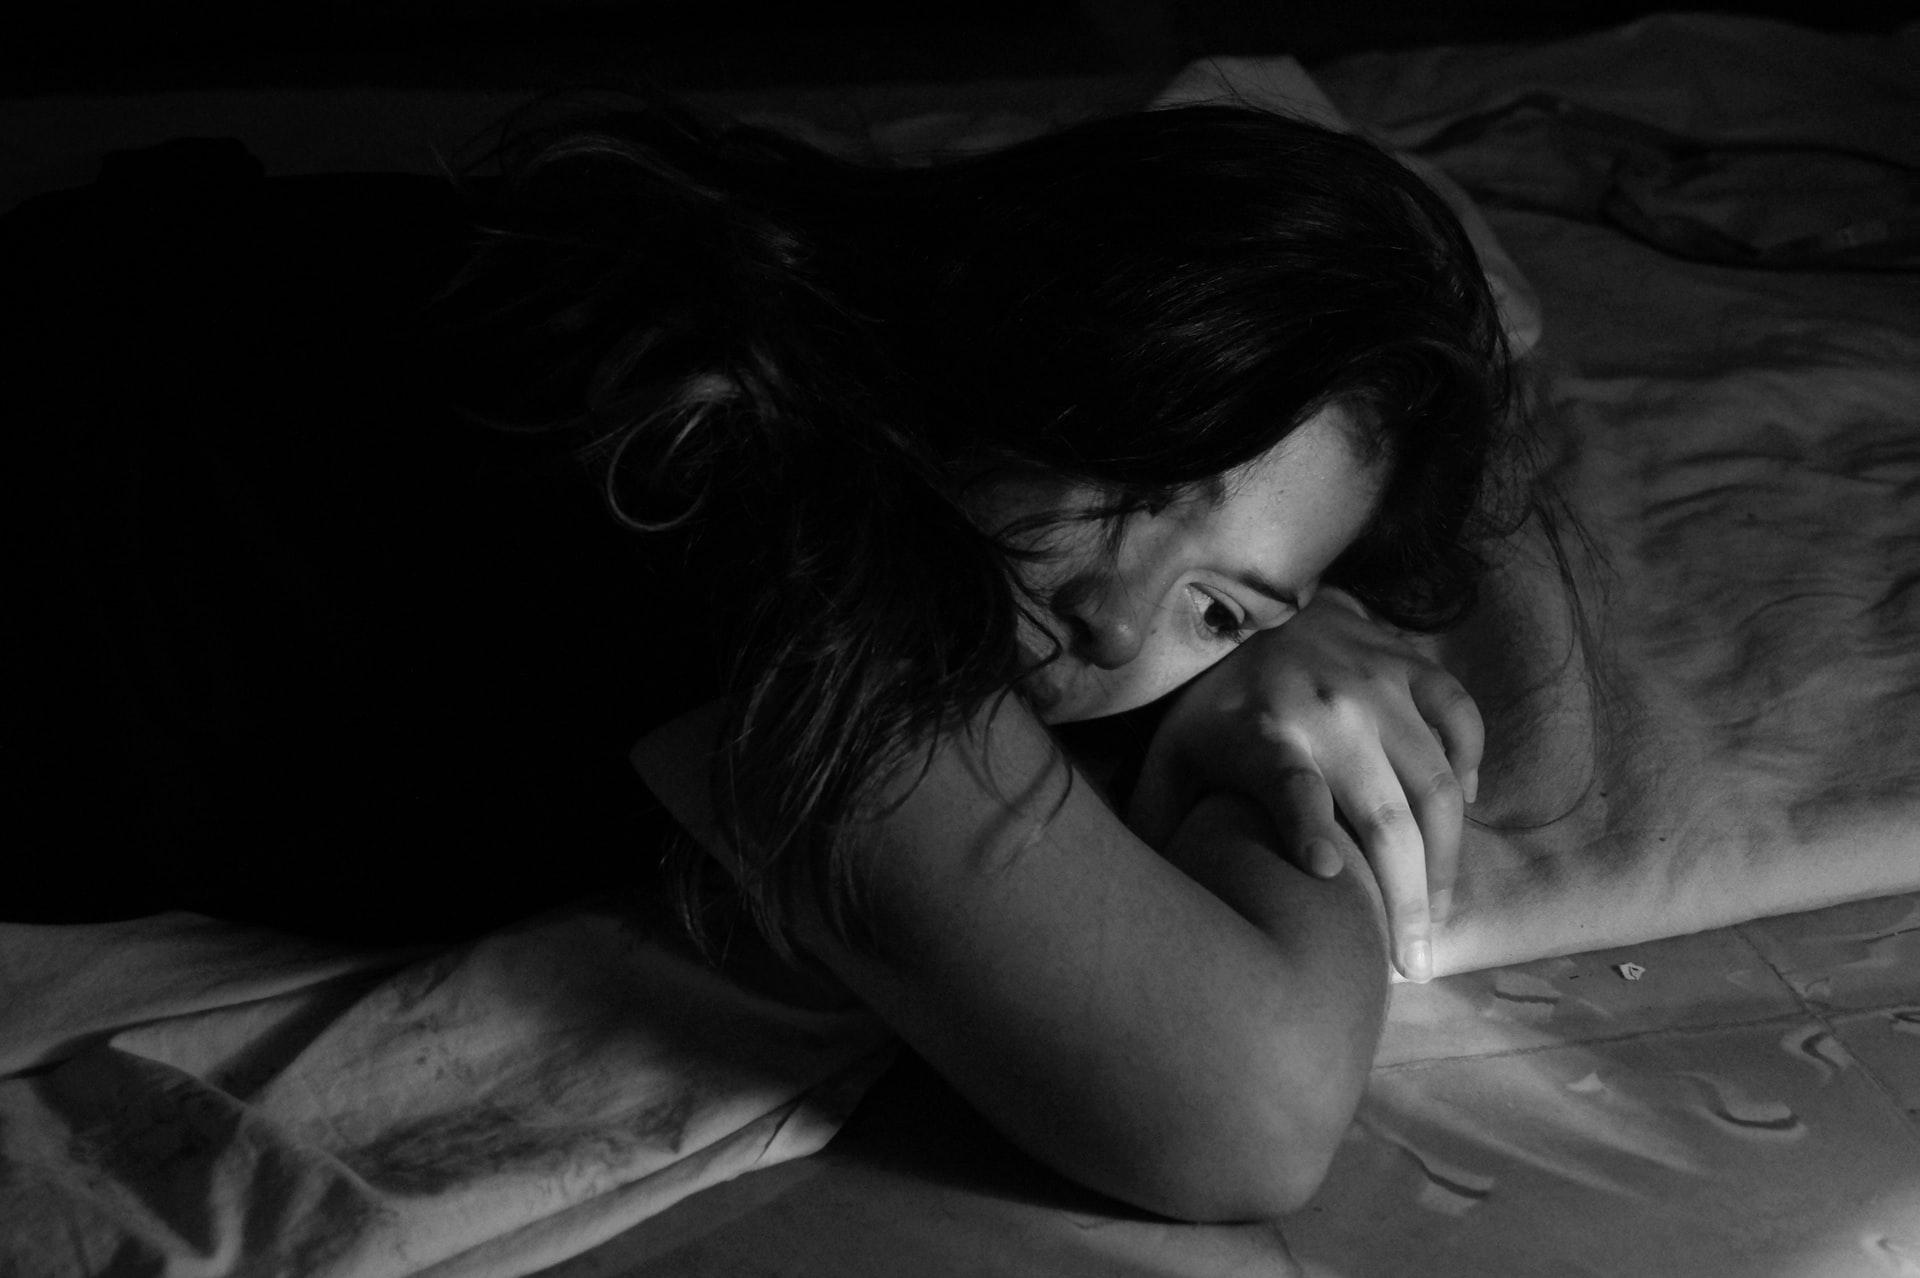 periods and depression can make it difficult to sleep